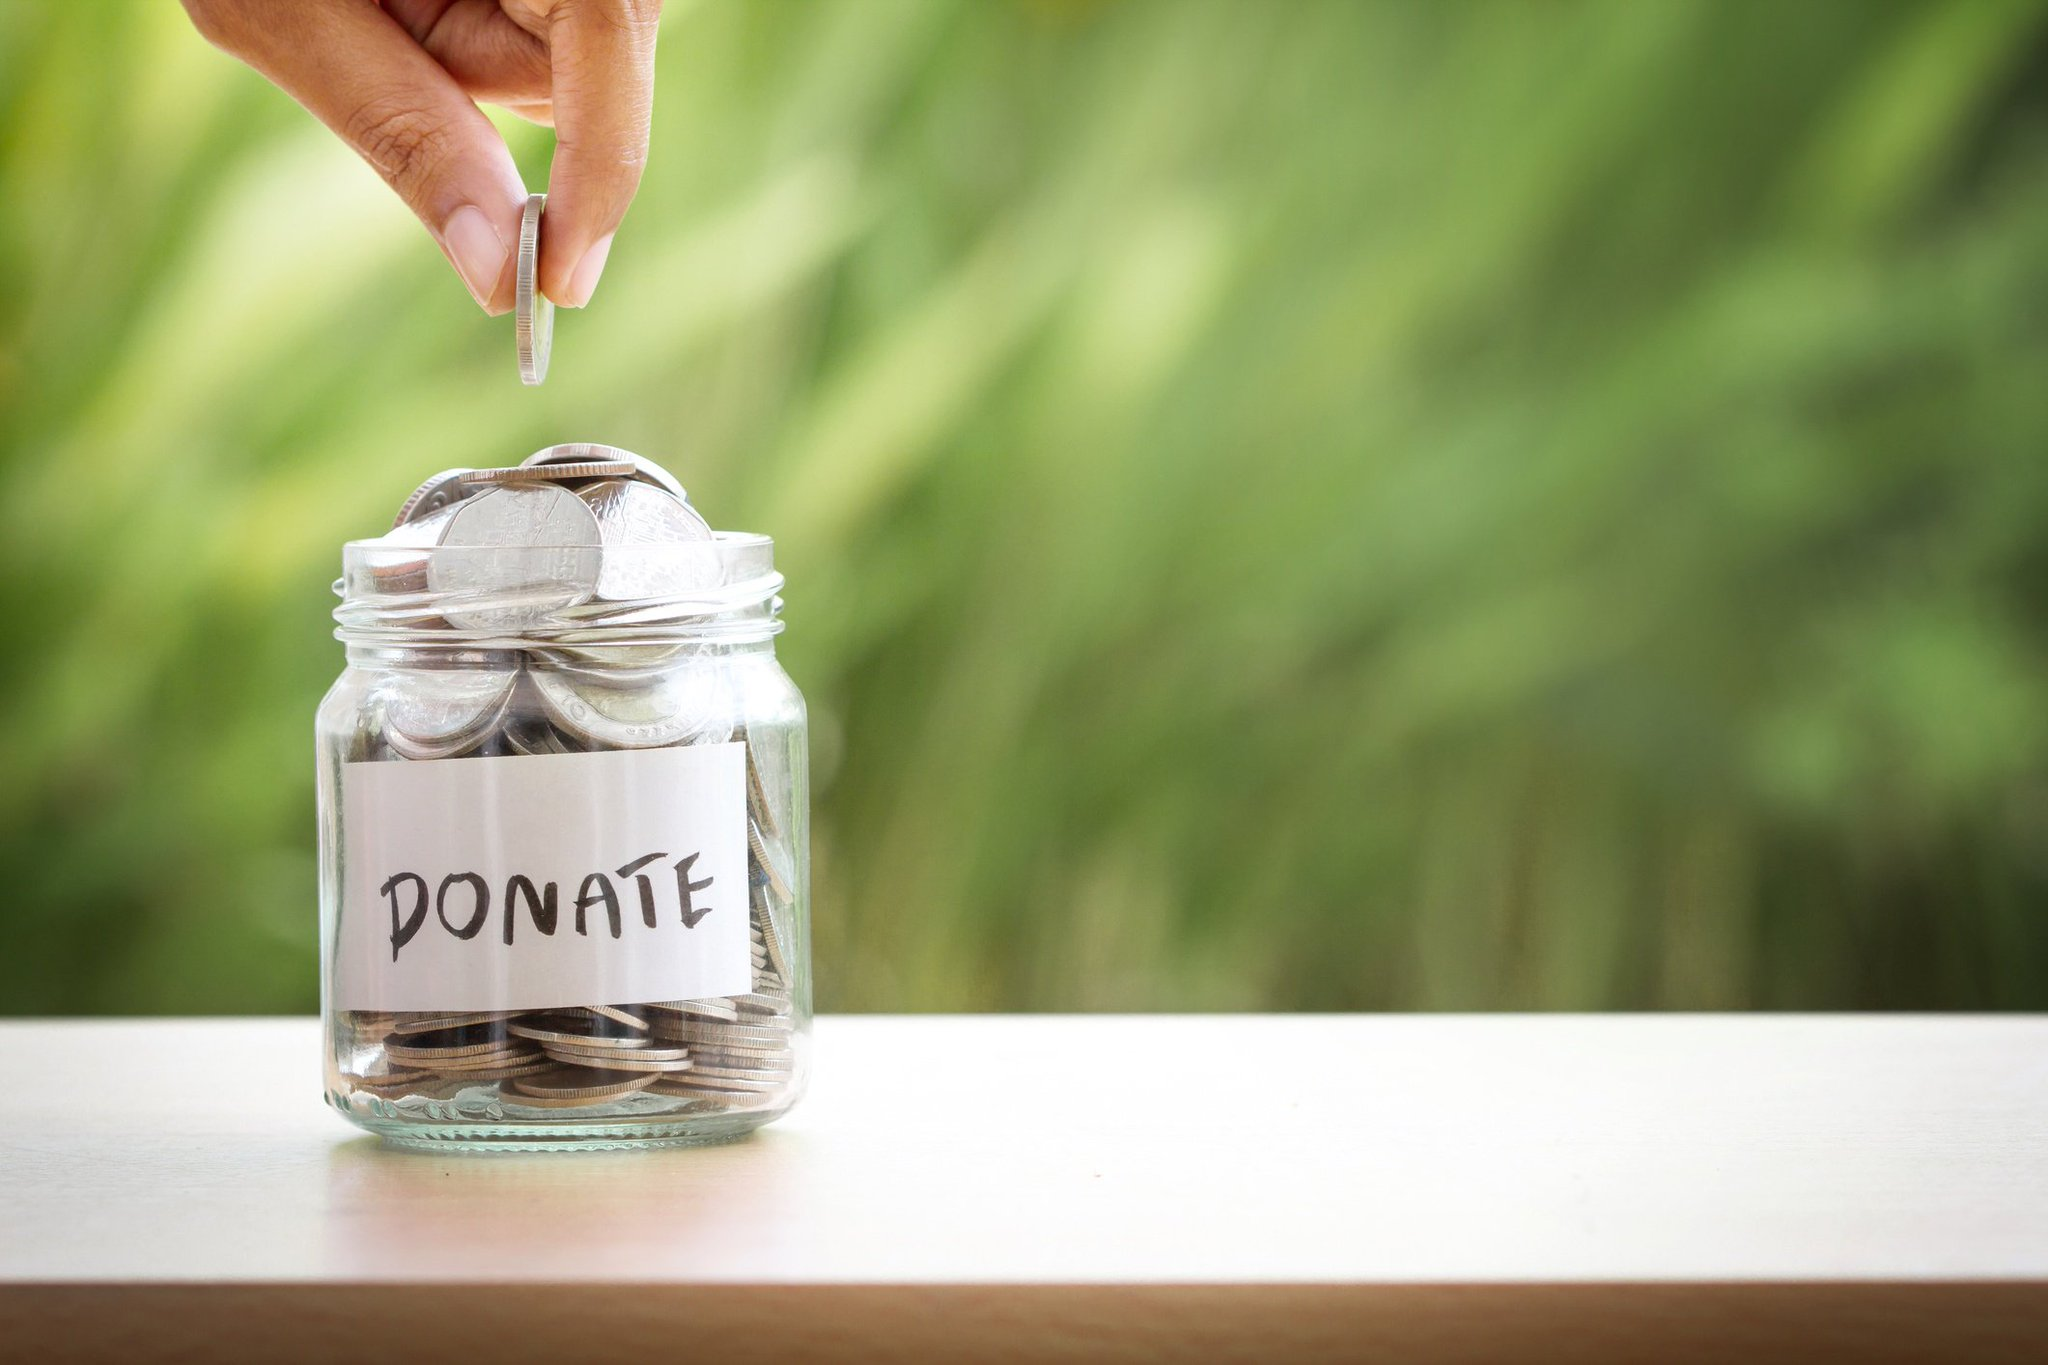 Learn how to avoid charity scams after a natural disaster: https://t.co/IhHL7PD0ew https://t.co/7X5MUJajDc